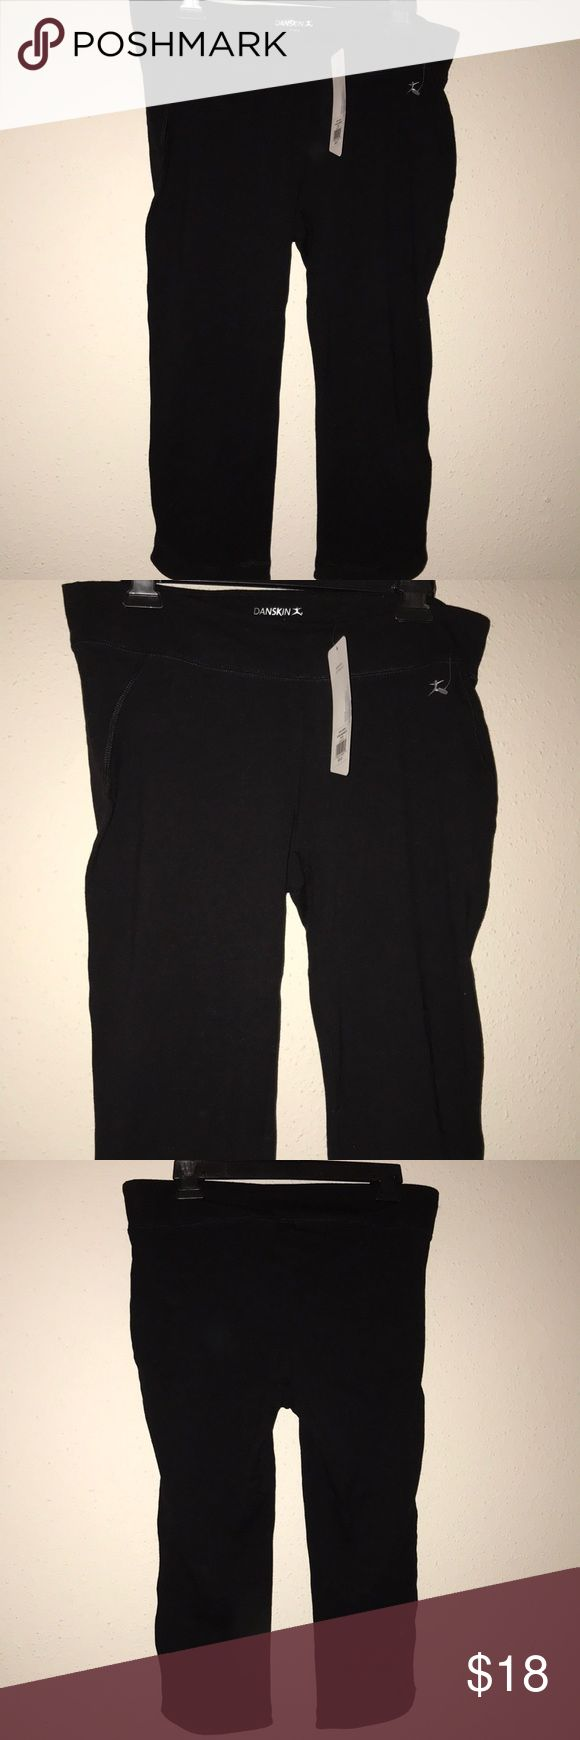 BNWT Danskin Capri leggings Brand new with tags, size large, black Danskin Capri leggings. Great for the gym, running errands, or under a shirt dress with some boots! Danskin Pants